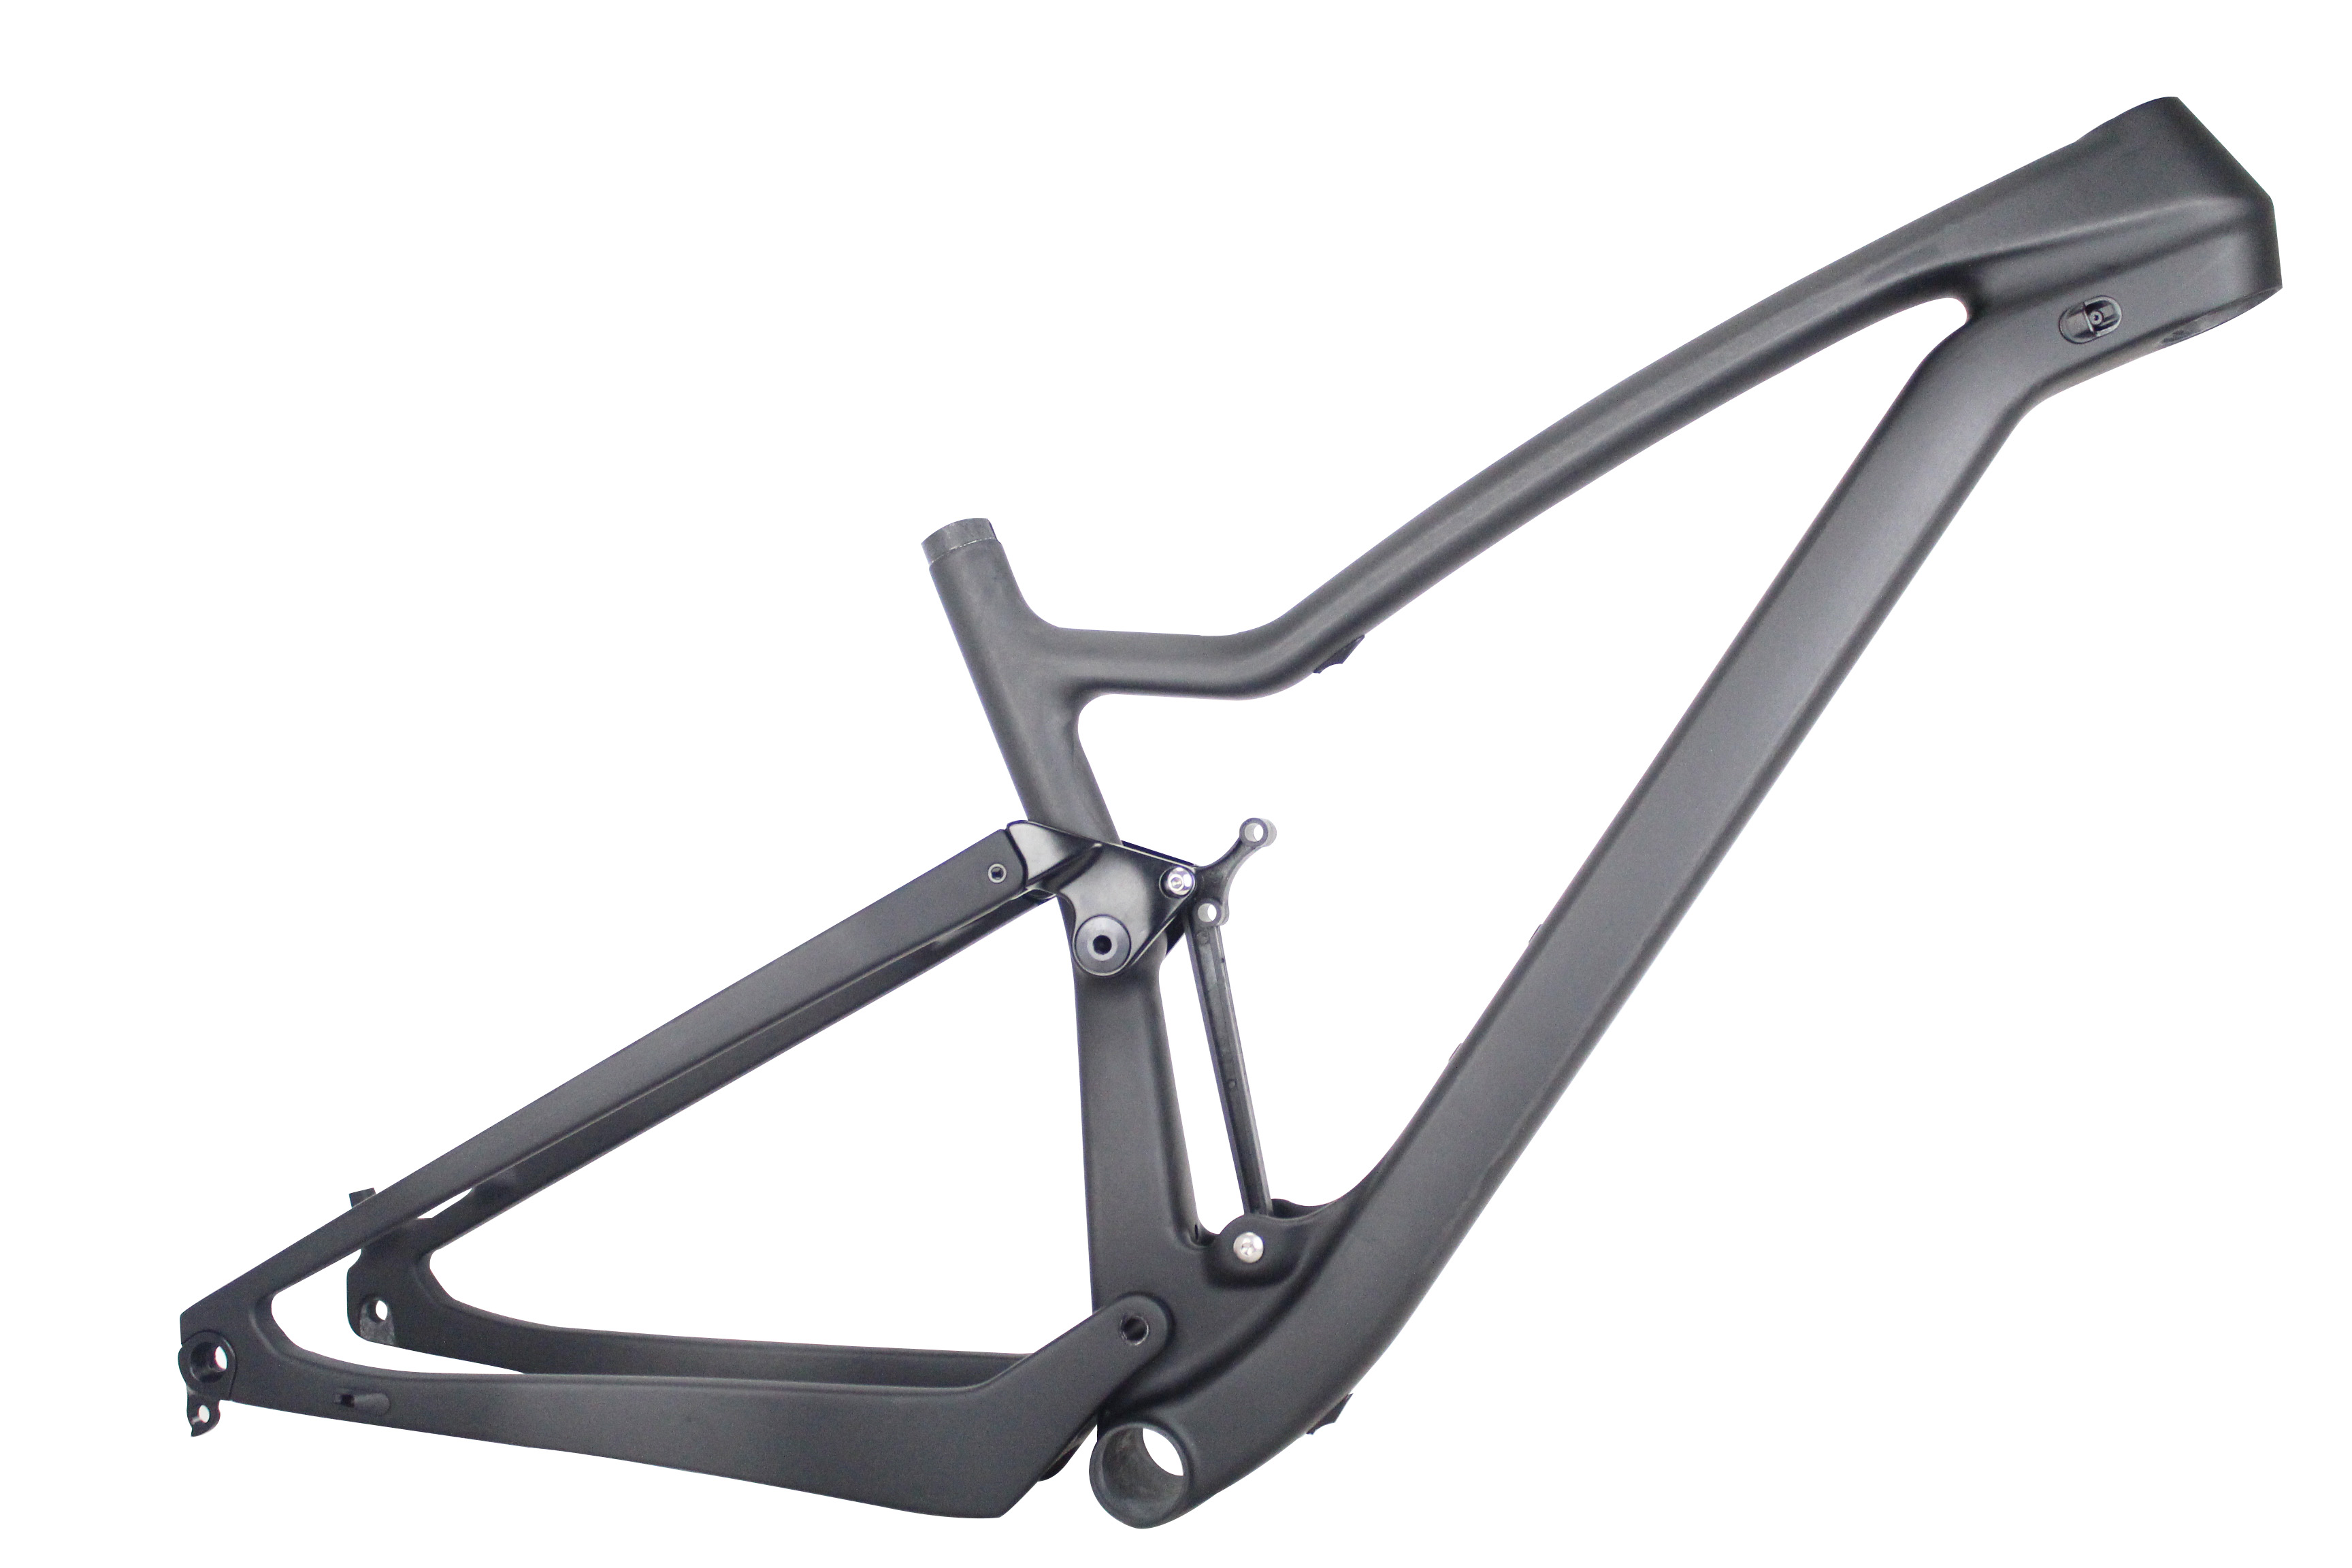 Enduro Bikes 29er XC Bike Carbon Mountain Bike Frame Cross Country 29er BOOSt Full Suspension Carbon Mountain Bike